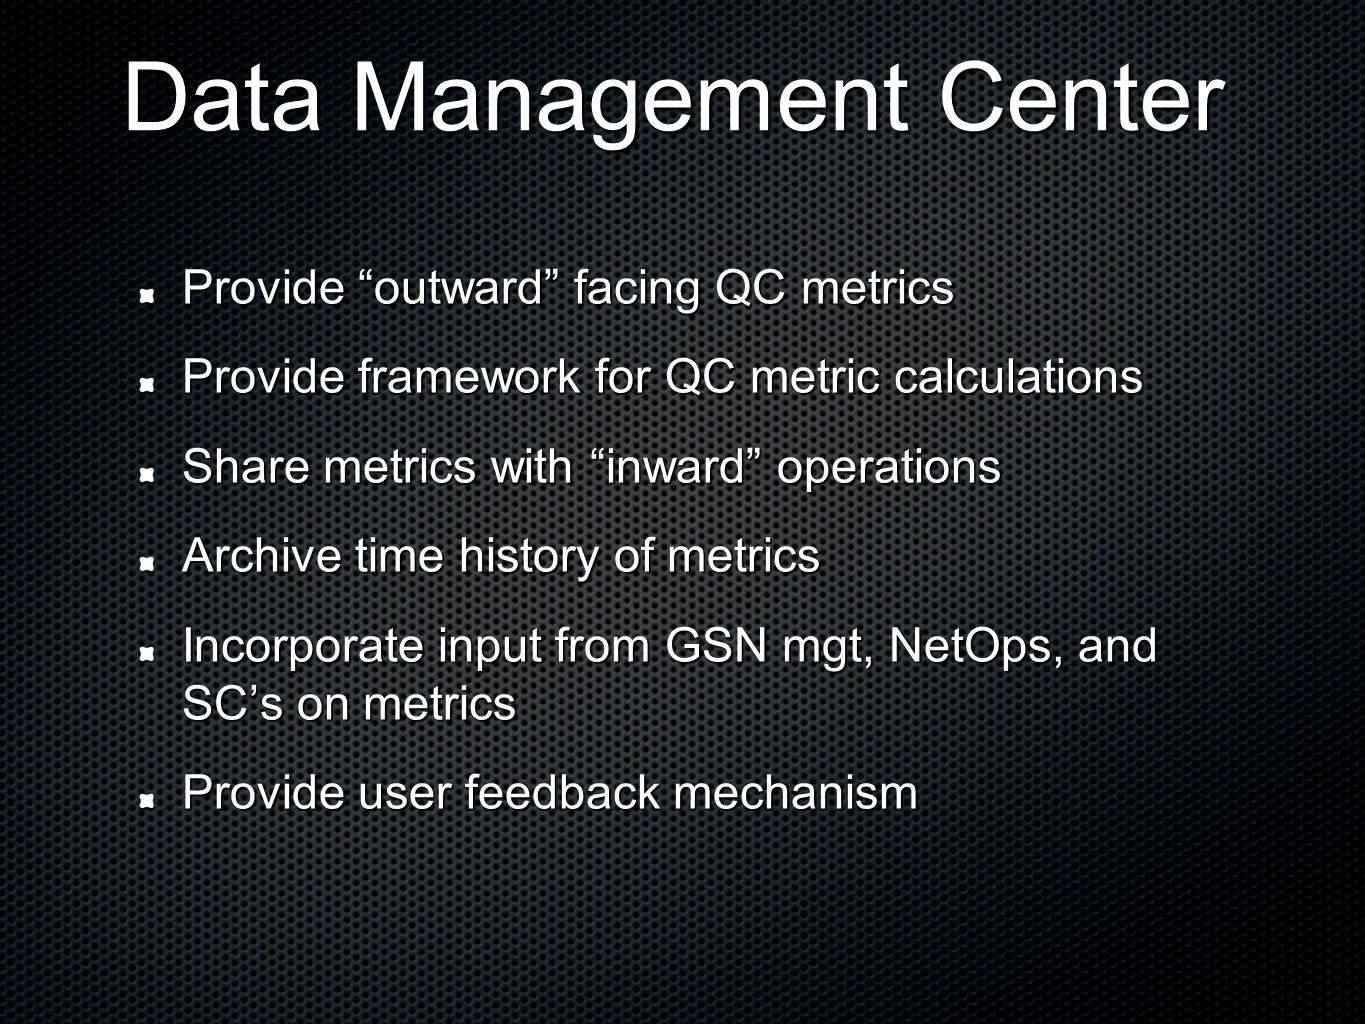 Data Management Center Provide outward facing QC metrics Provide framework for QC metric calculations Share metrics with inward operations Archive time history of metrics Incorporate input from GSN mgt, NetOps, and SC's on metrics Provide user feedback mechanism